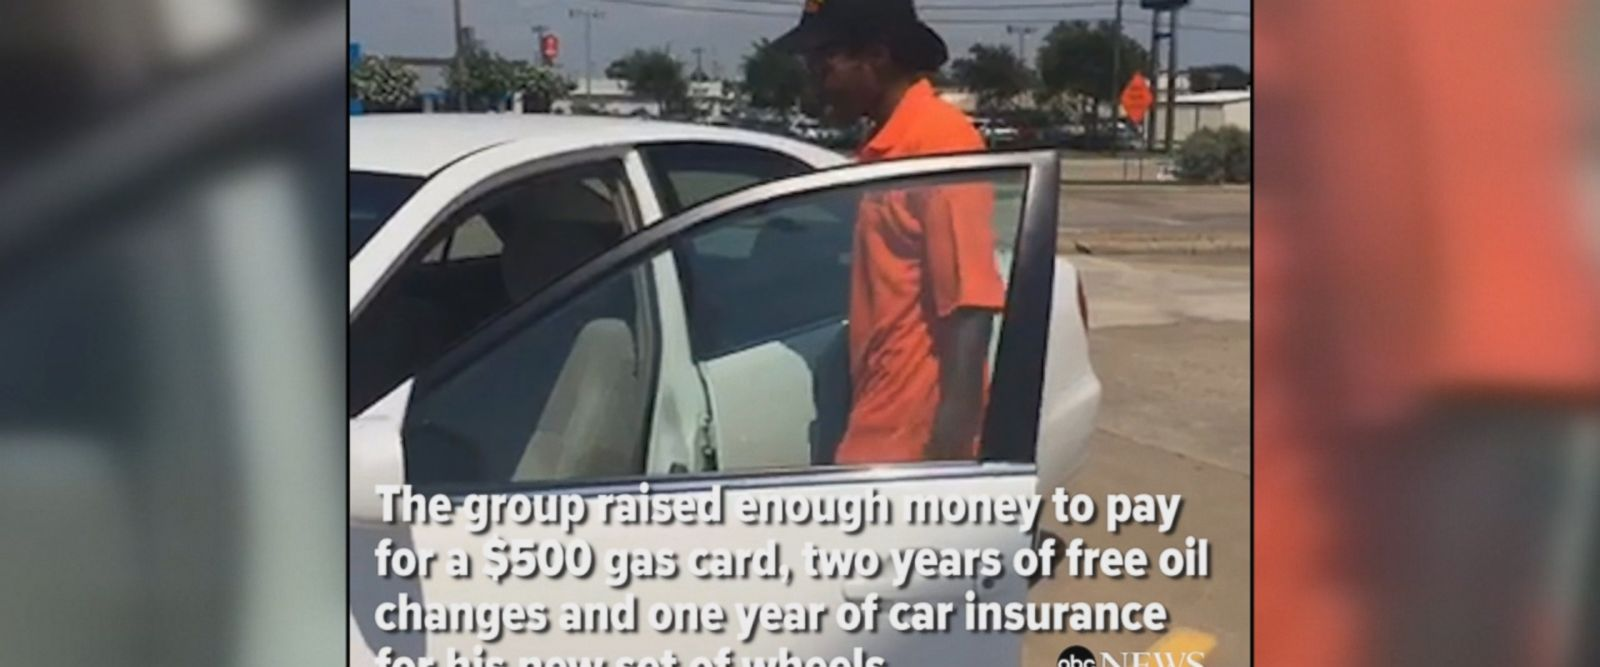 Kindhearted strangers bought a car for a hard-working man who walks three miles to work every day.